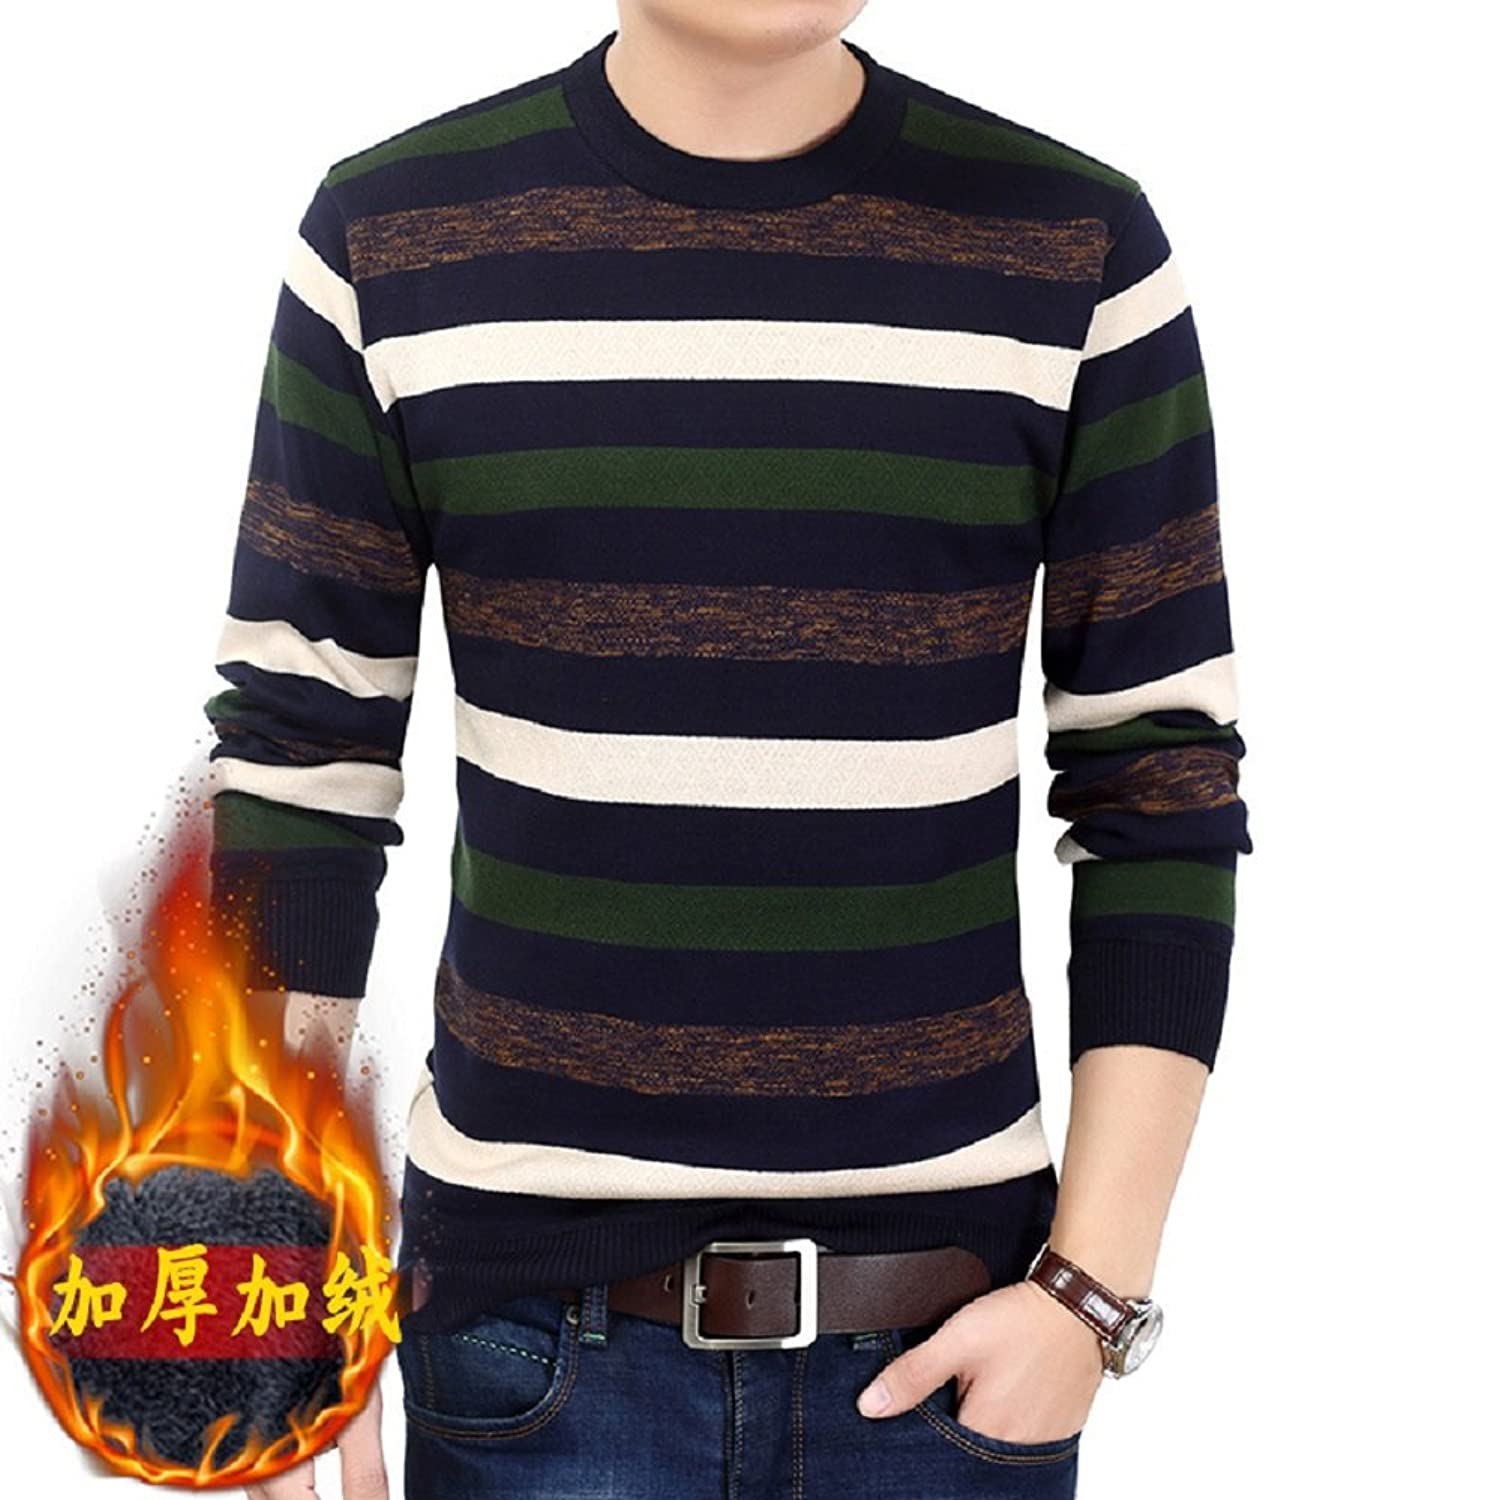 HUAYAN Men's Knitwear Sweaters Crewneck Striped Winter Thick Warm Jumpers Pullovers